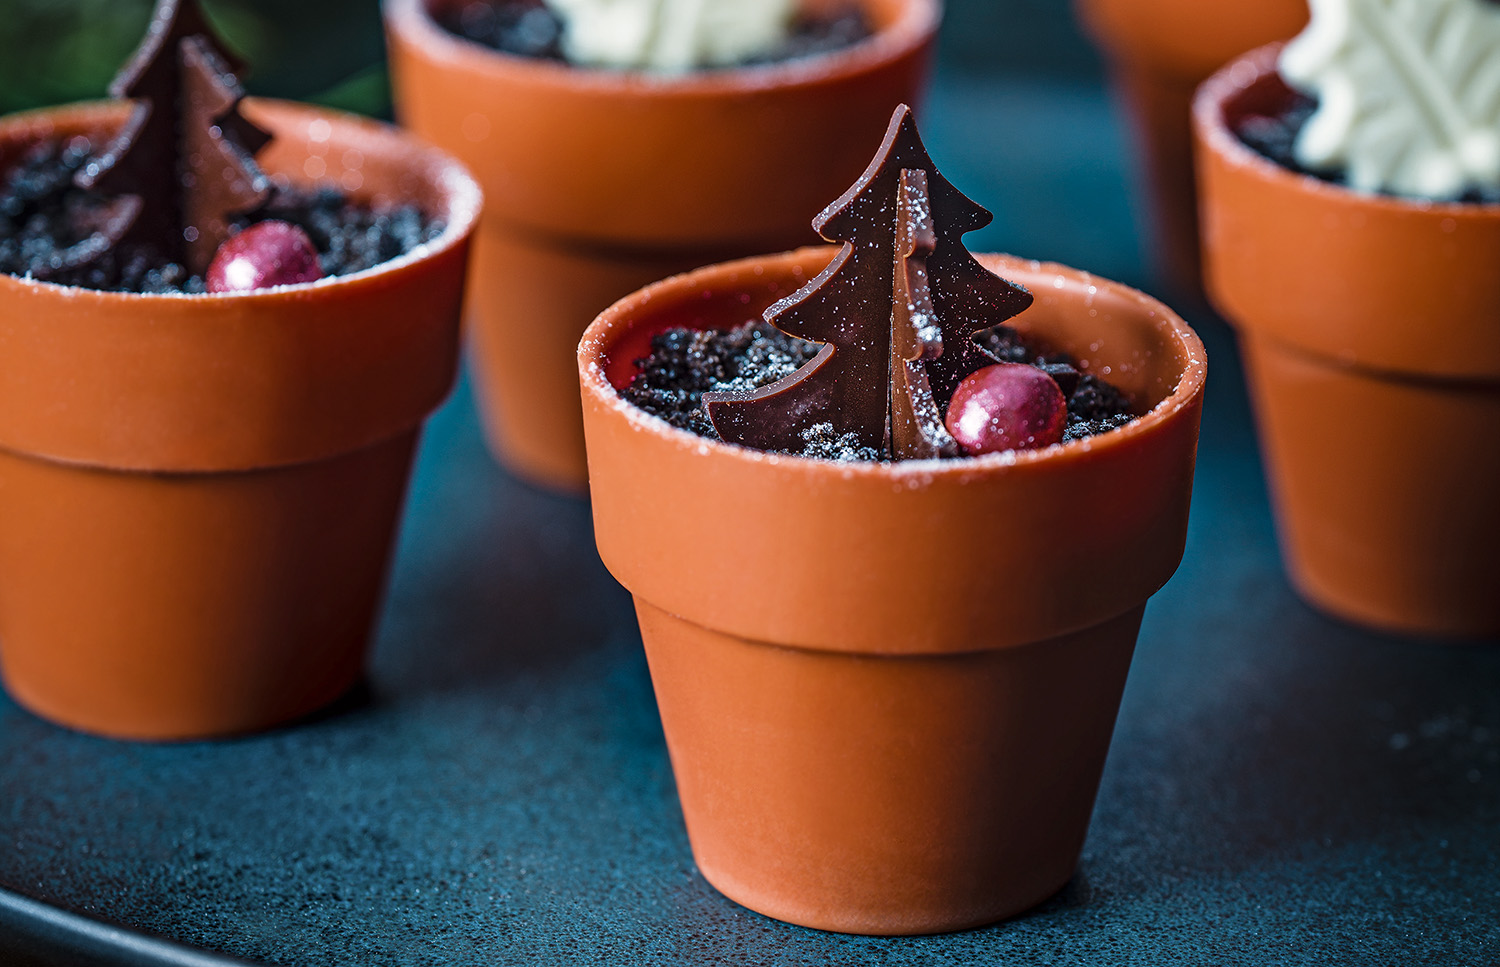 Tesco Finest Black Forest chocolate plant pots